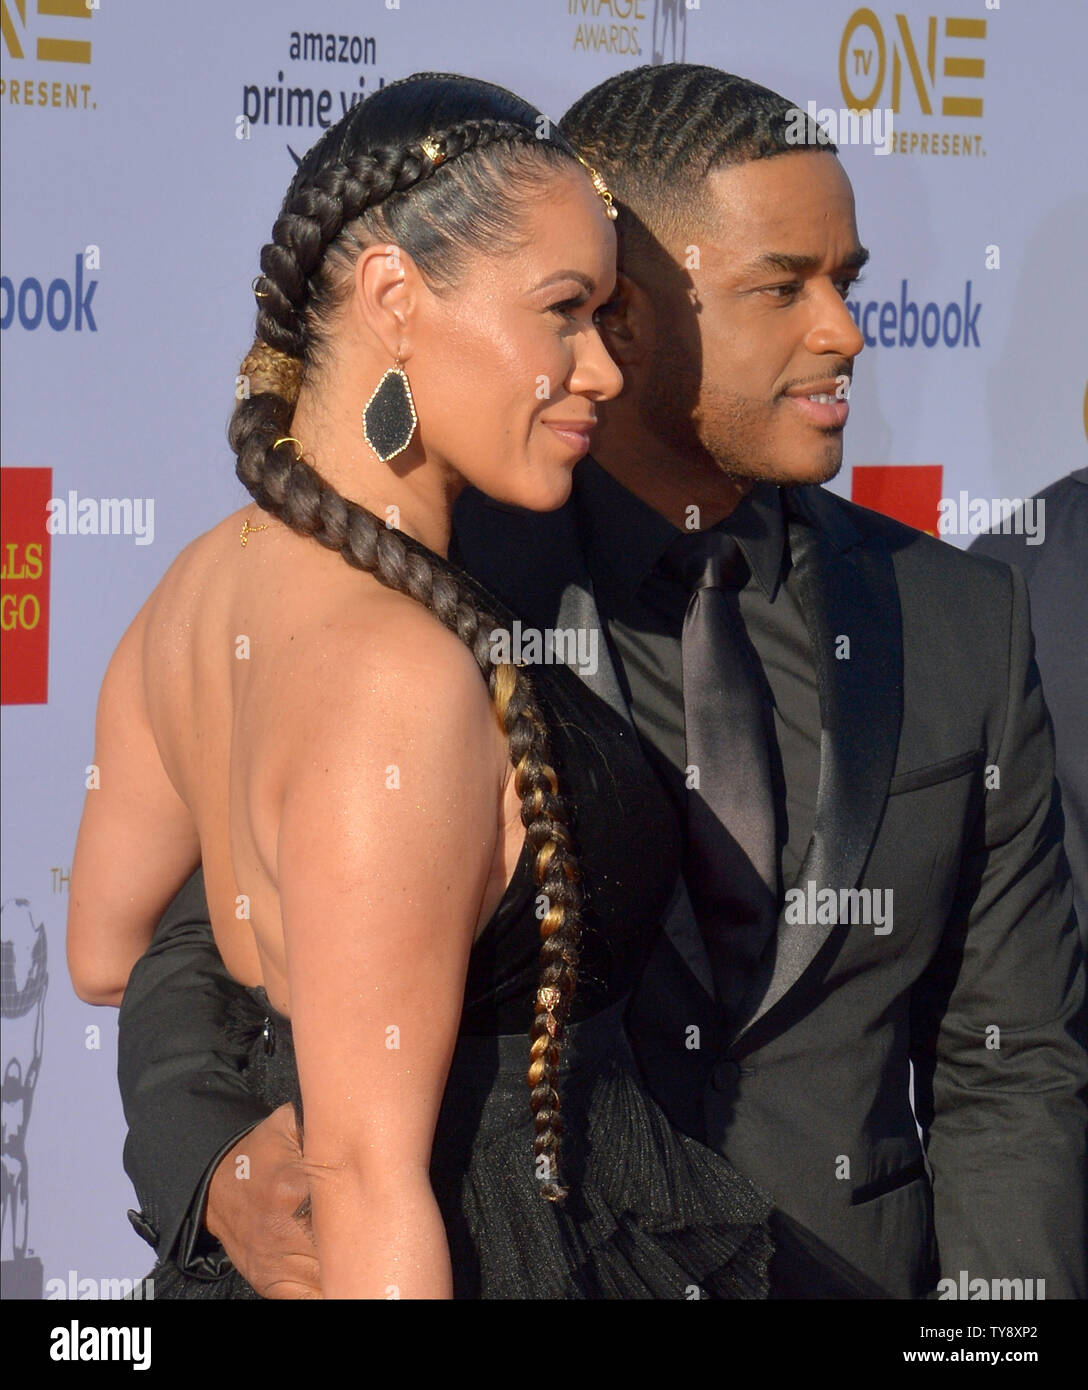 Tomasina Parrott L And Larenz Tate Arrive For The 50th Annual Naacp Image Awards At The Dolby Theatre In The Hollywood Section Of Los Angeles On March 30 2019 The Naacp Image 2 how much is tomasina parrott's net worth? https www alamy com tomasina parrott l and larenz tate arrive for the 50th annual naacp image awards at the dolby theatre in the hollywood section of los angeles on march 30 2019 the naacp image awards celebrates the accomplishments of people of color in the fields of television music literature and film and also honors individuals or groups who promote social justice through creative endeavors photo by jim ruymenupi image257737482 html